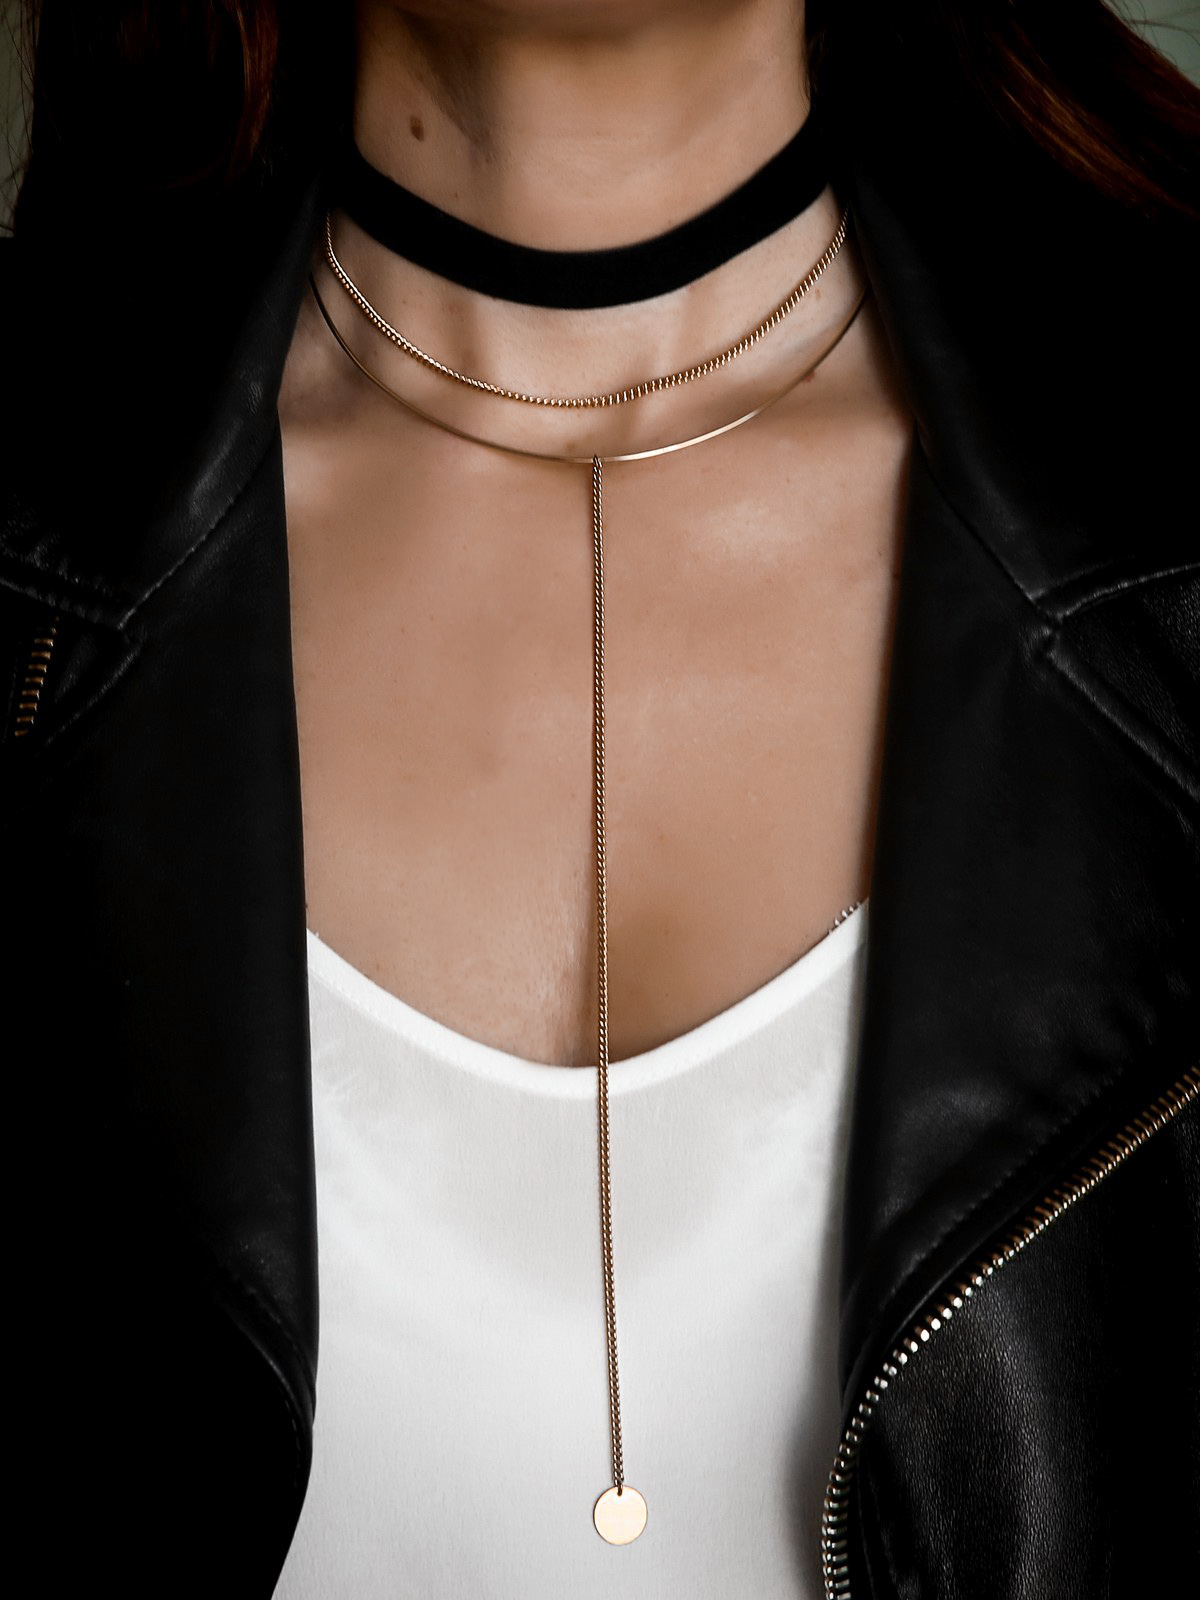 layered necklaces and velvet choker